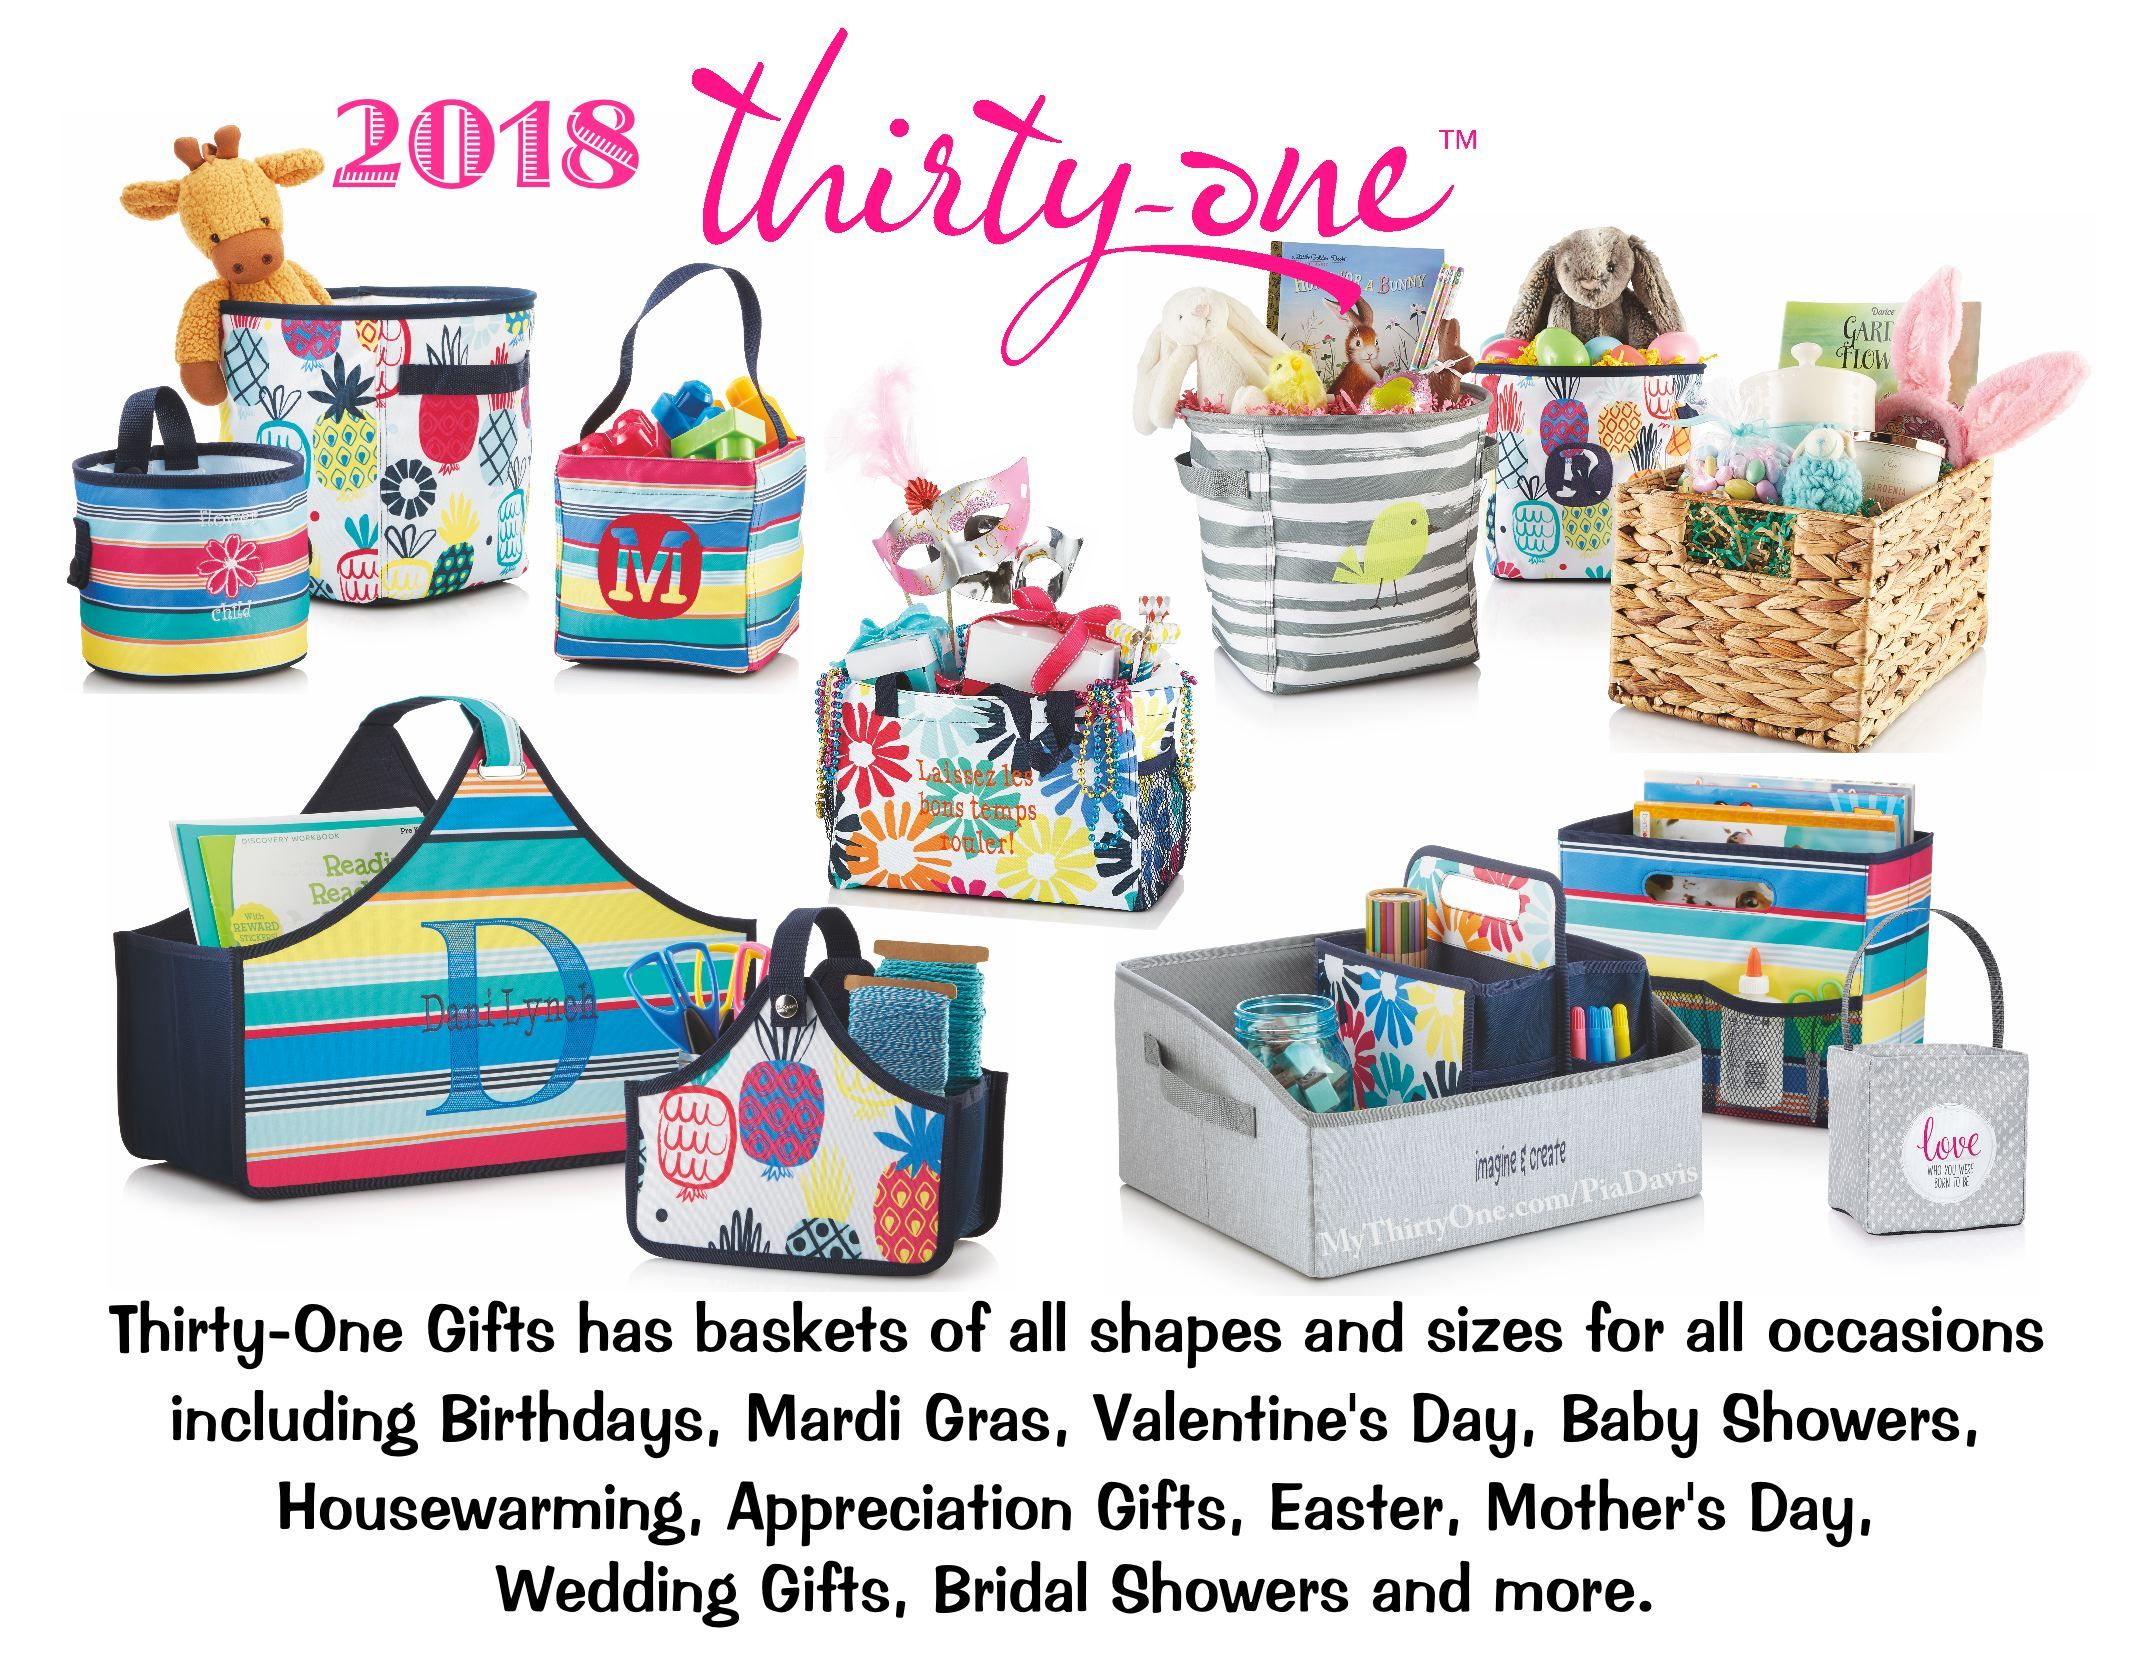 31 2018 thirty one gifts has baskets of all shapes and sizes for all for all occasions including birthdays mardi gras valentines day baby showers housewarming appreciation gifts hostess gifts easter mothers day negle Choice Image